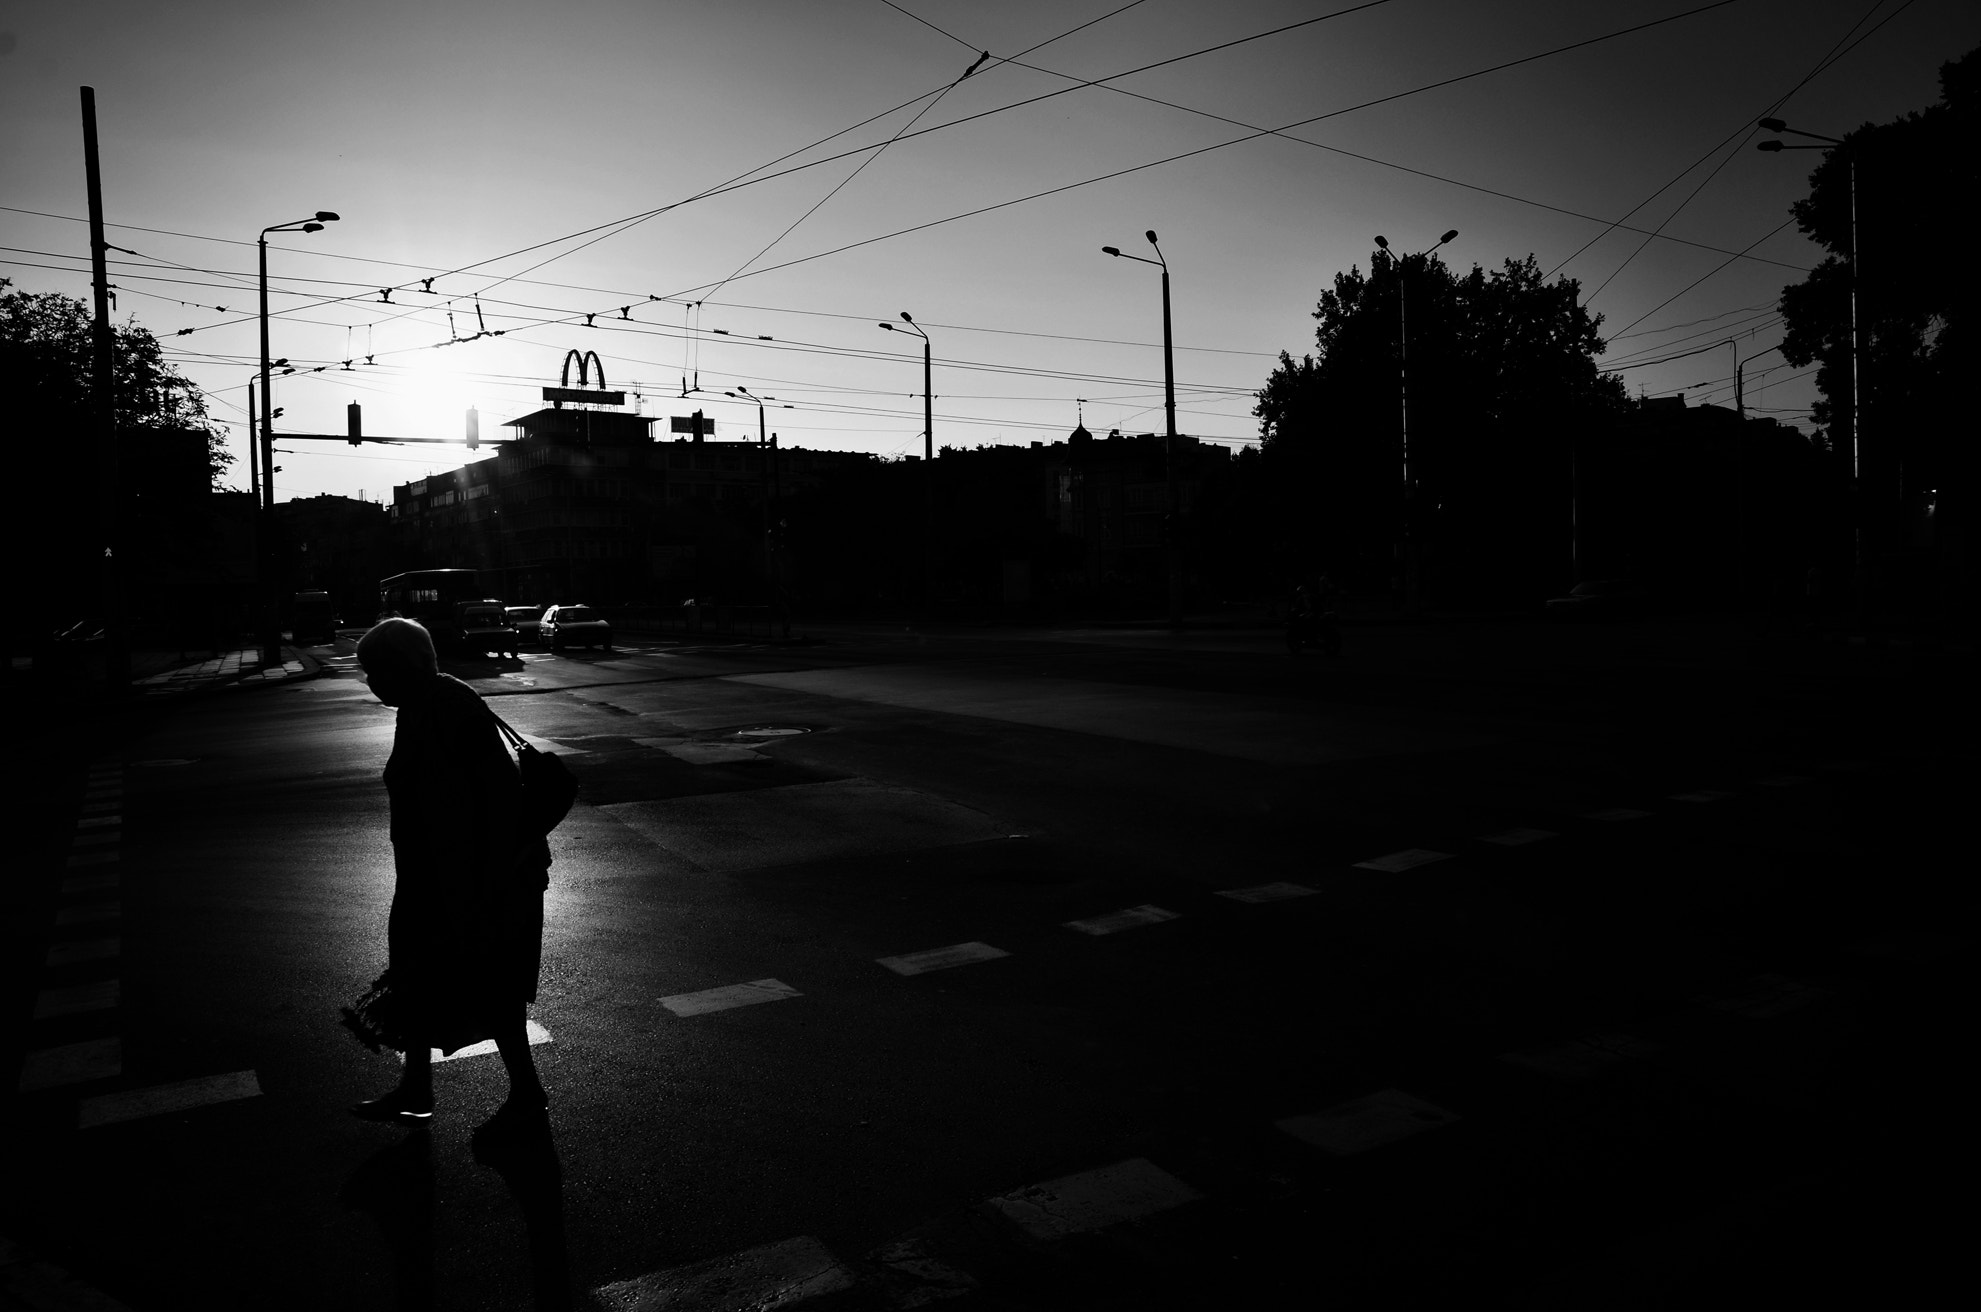 Photograph Crossing by Martin Hricko on 500px